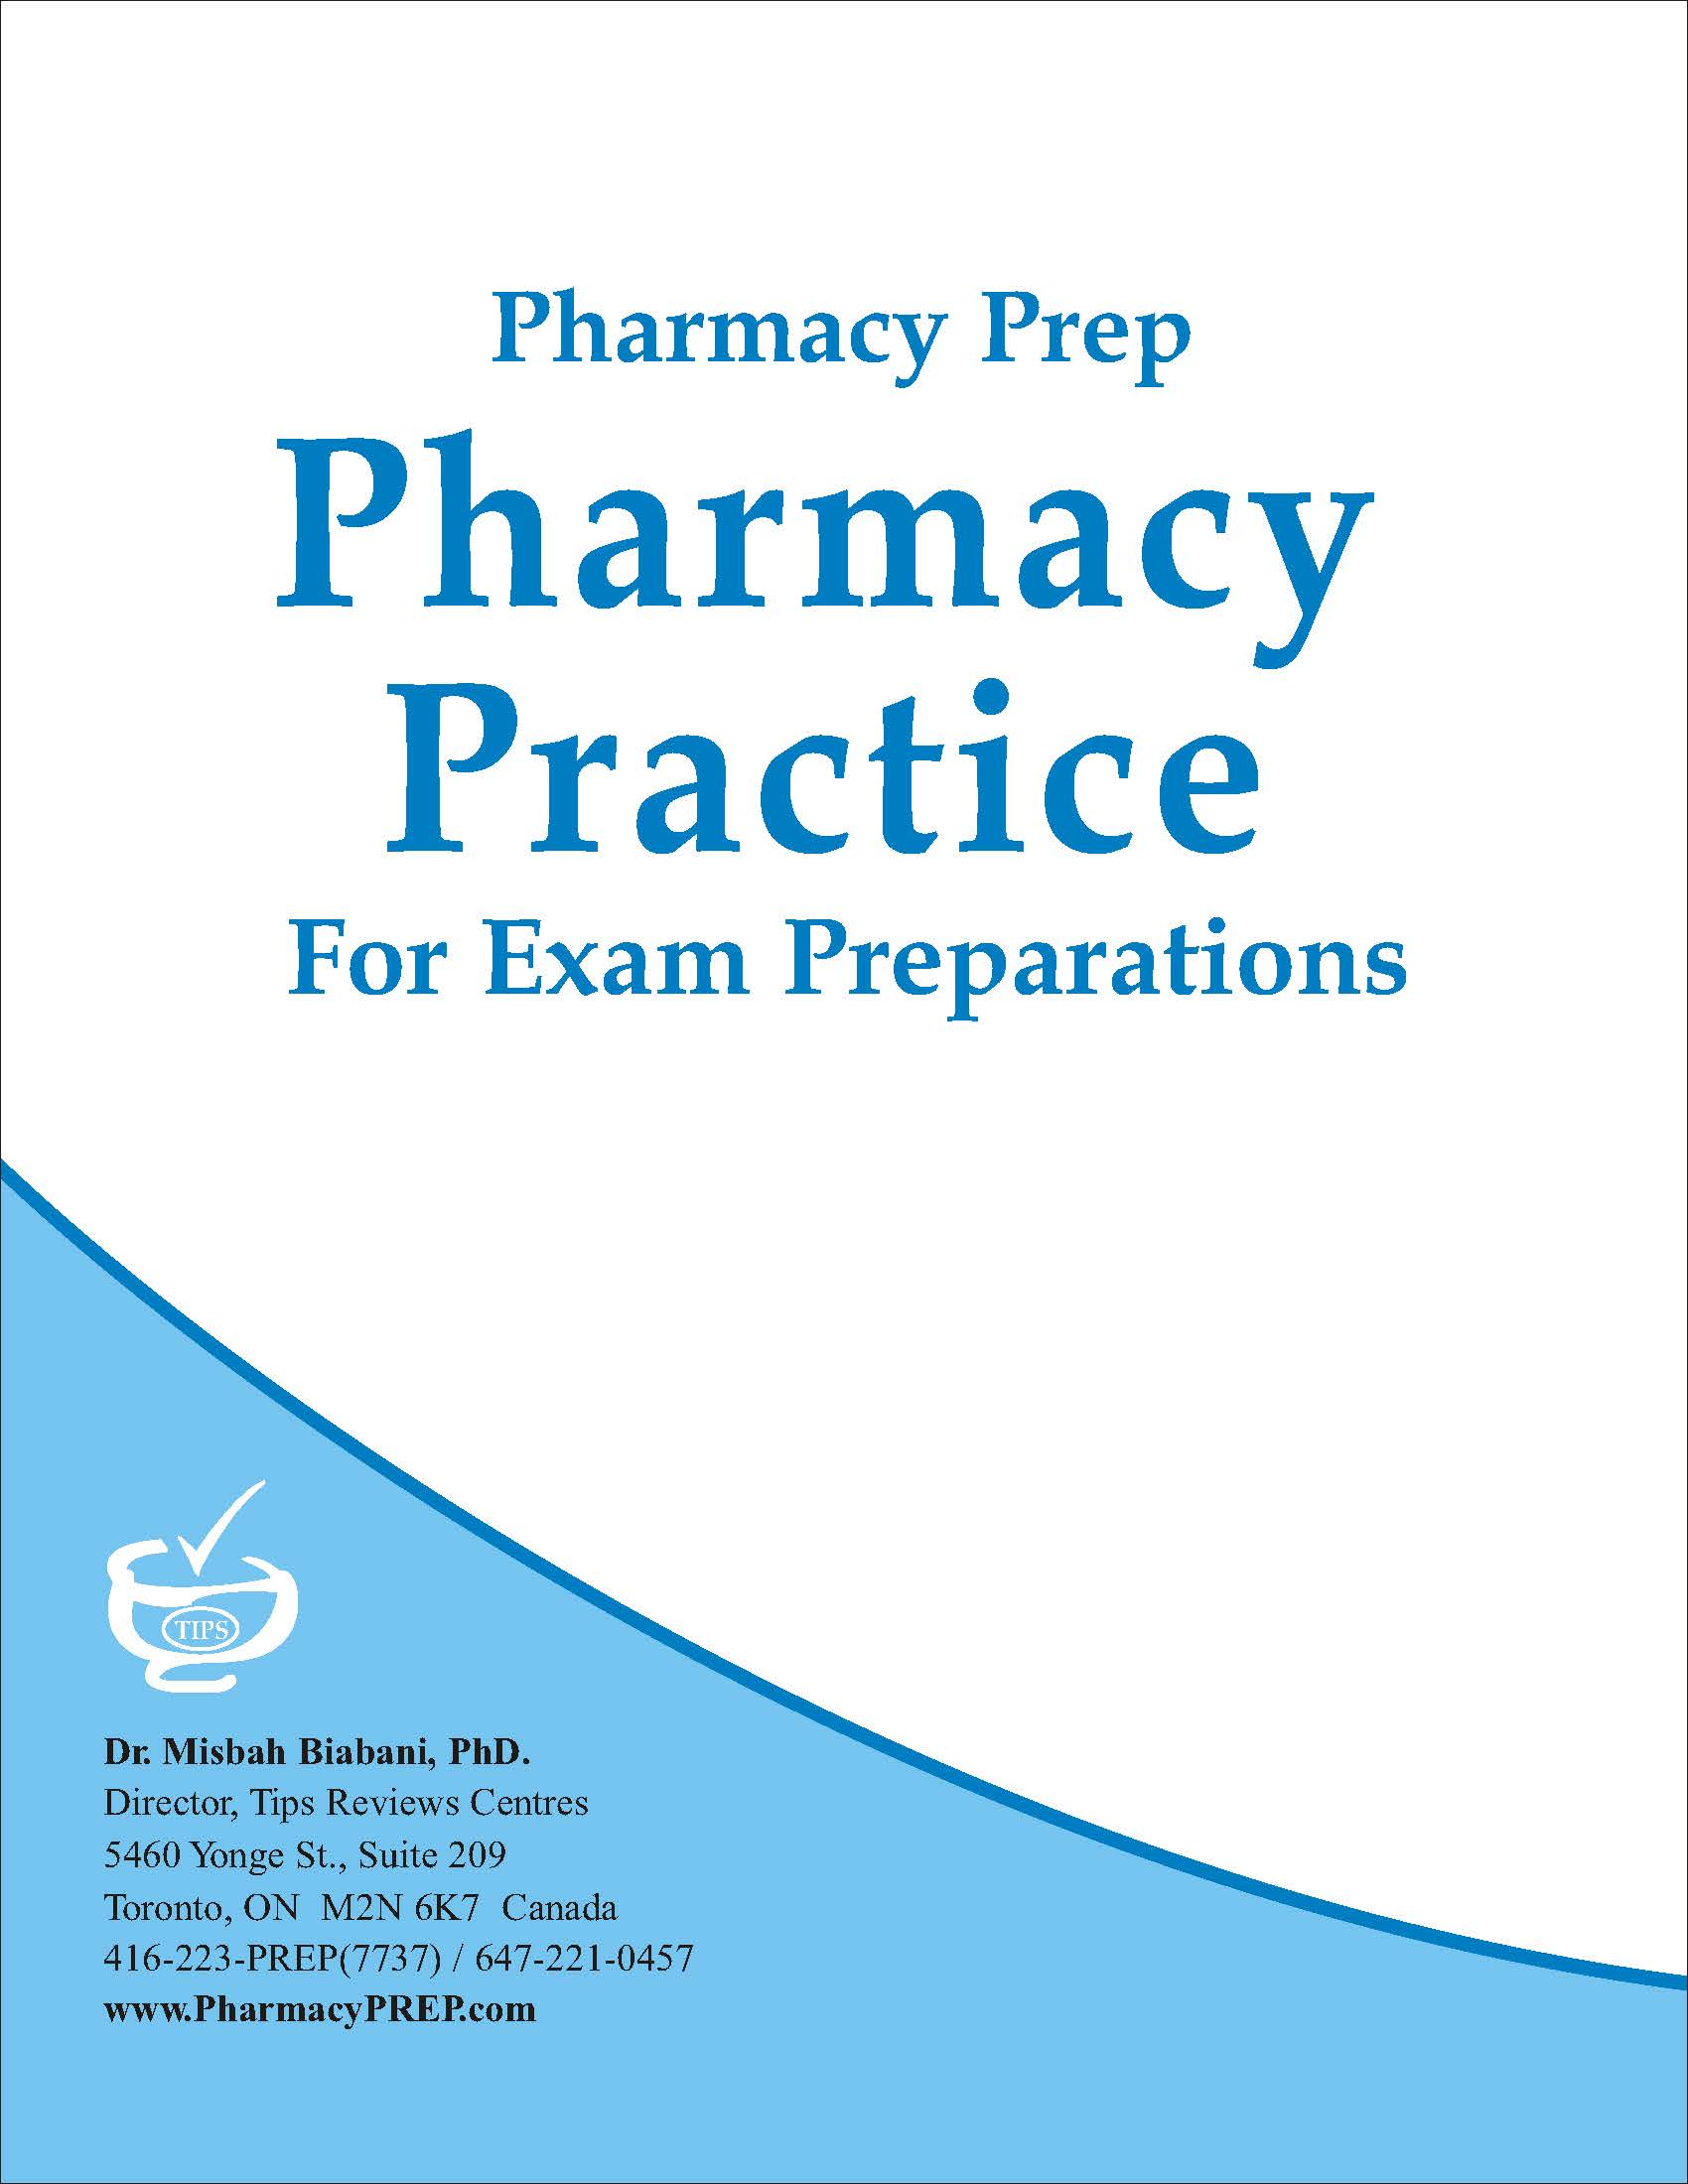 reference guide for pharmacy technician exam essay service rh wuassignmenthuza tv1897kallenhardt info Certified Pharmacy Technician Objective Pharmacy Technician Exam Study Guide